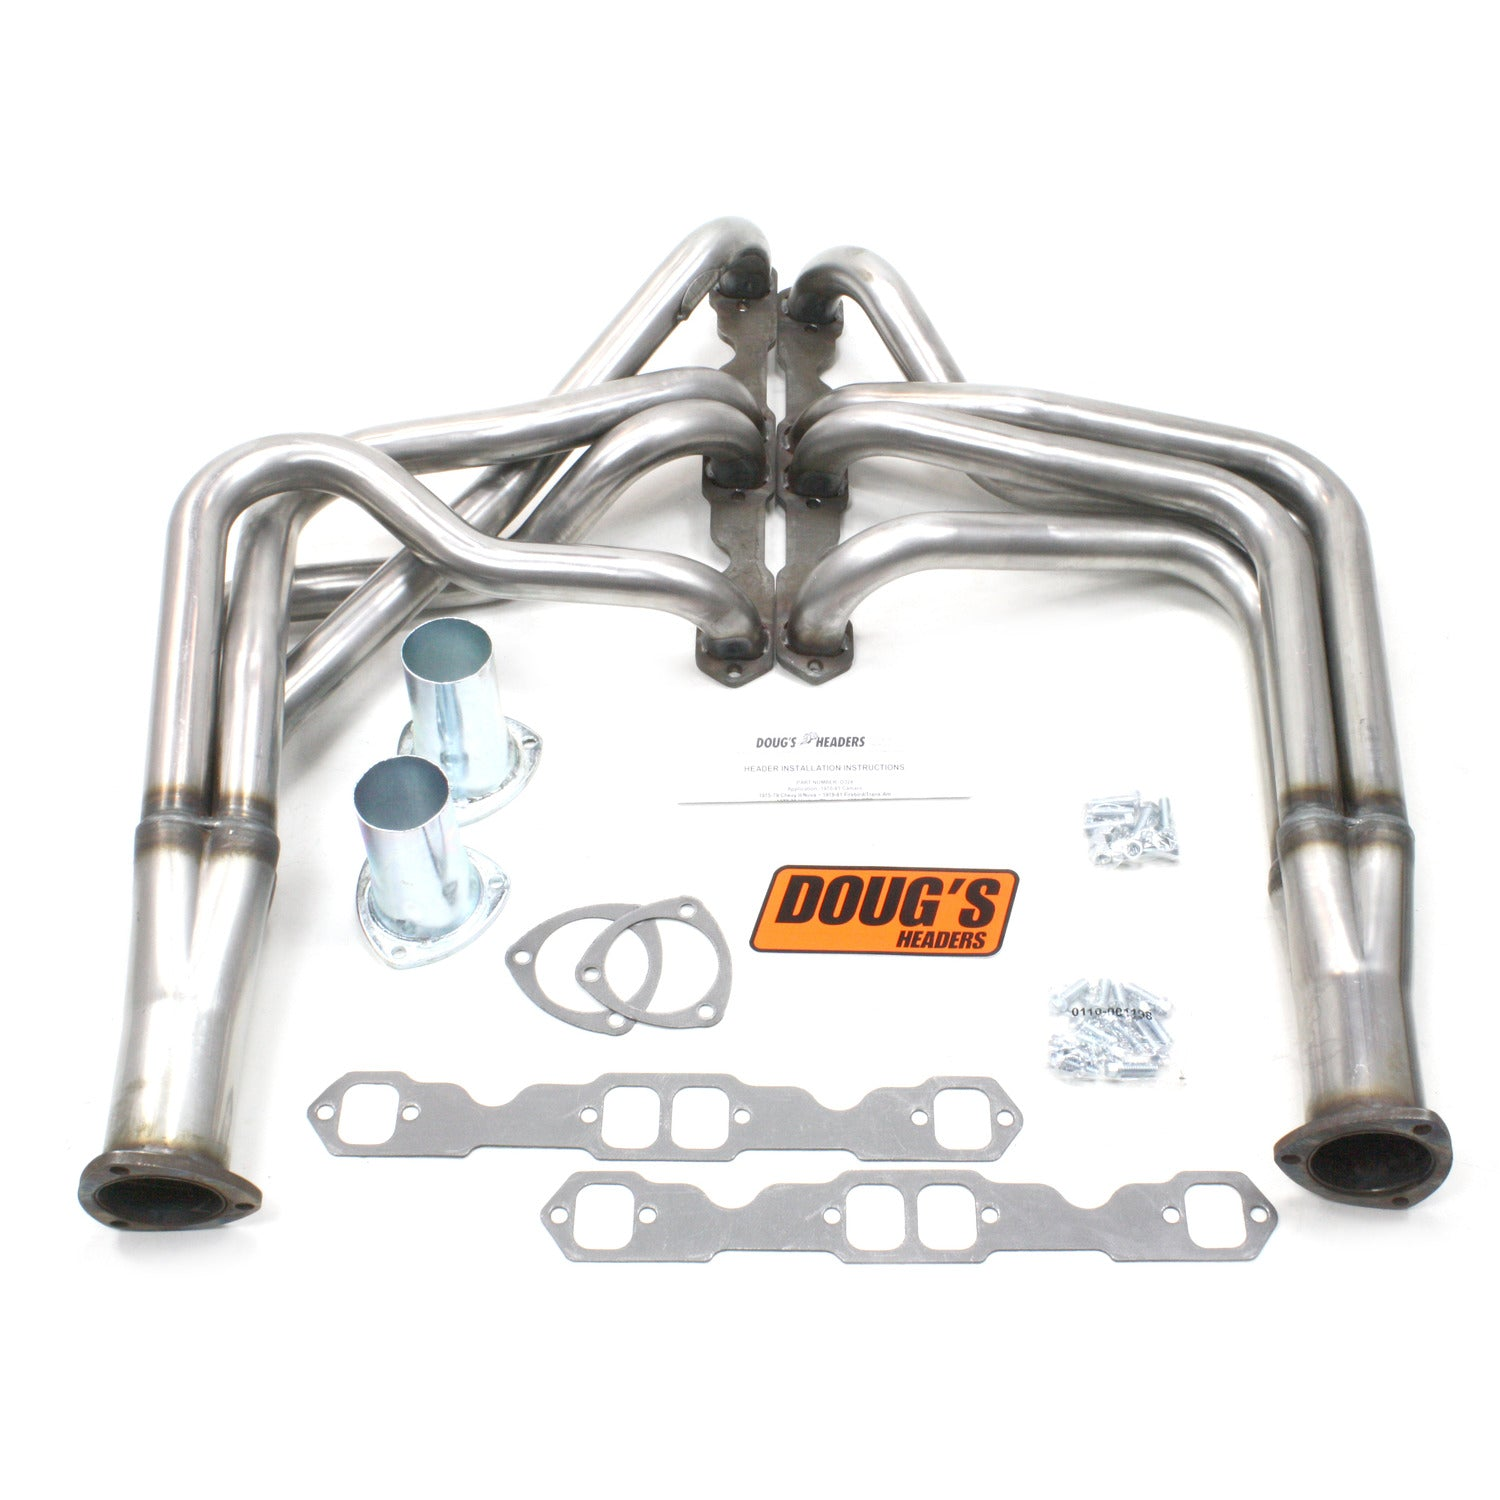 "Doug's Headers D324-R 1 3/4"" 4-Tube Full Length Header Camaro Small Block Chevrolet 70-81 Raw Steel"